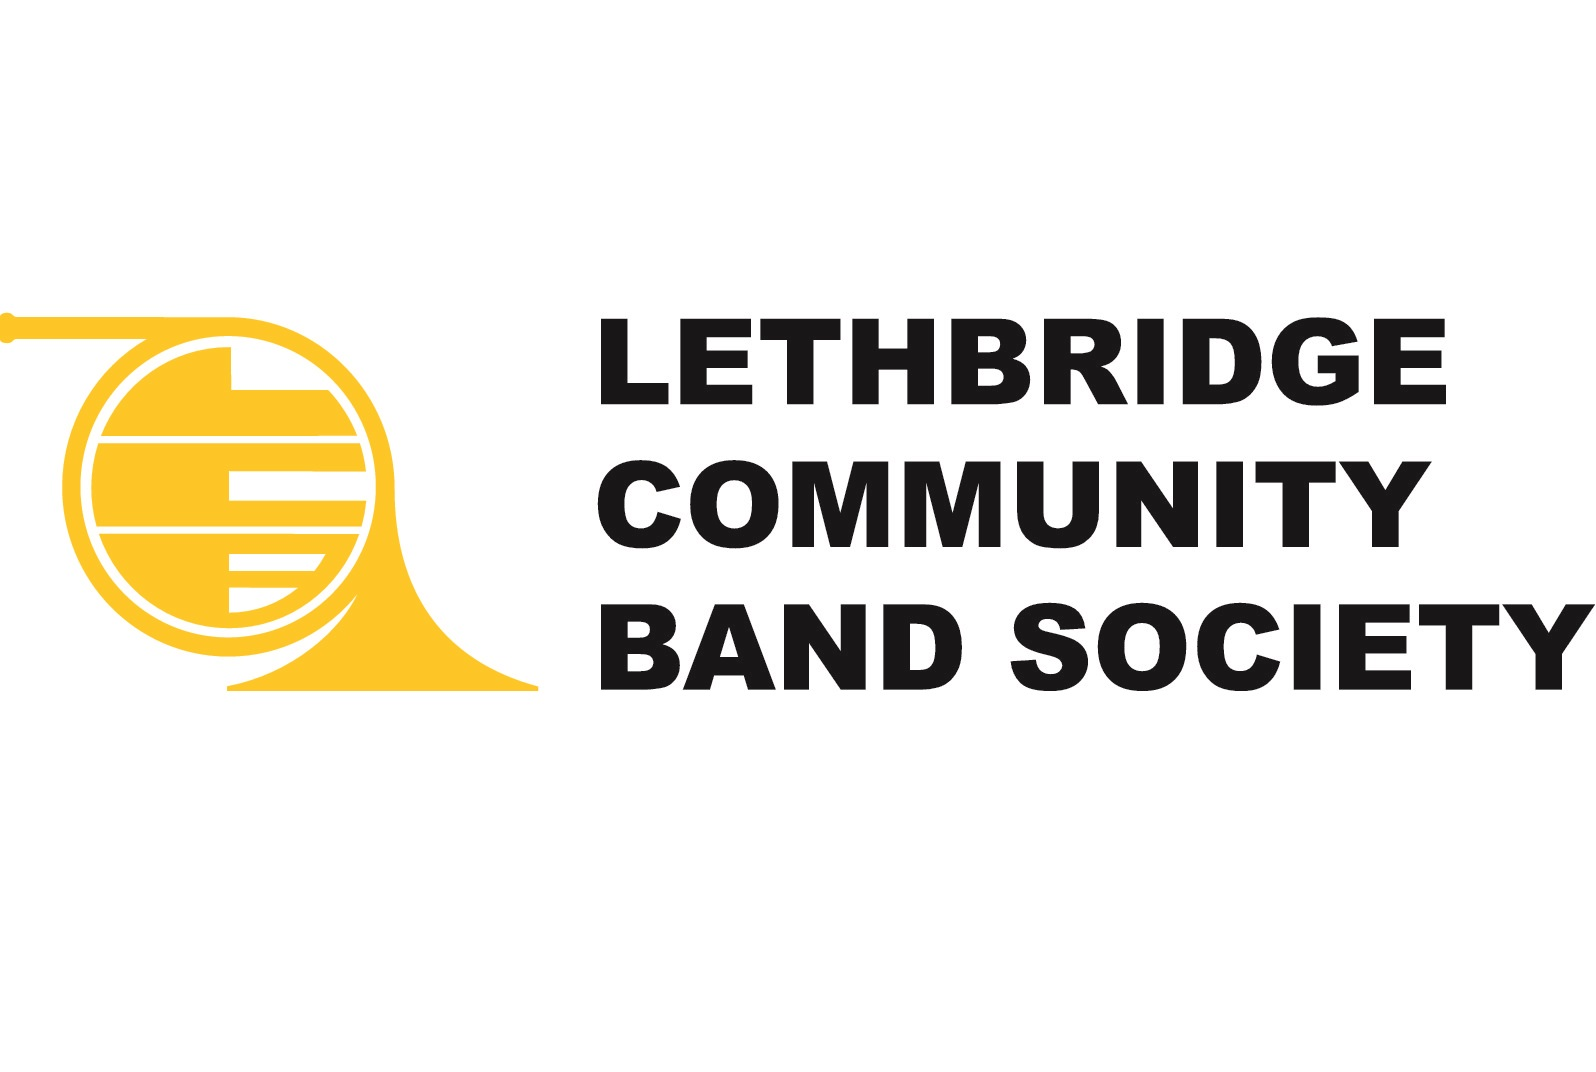 lethbridge public library lethbridge public library for tickets lethbridge community band society at least 24 hours prior to show vouchers must be picked up at the main branch customer service desk